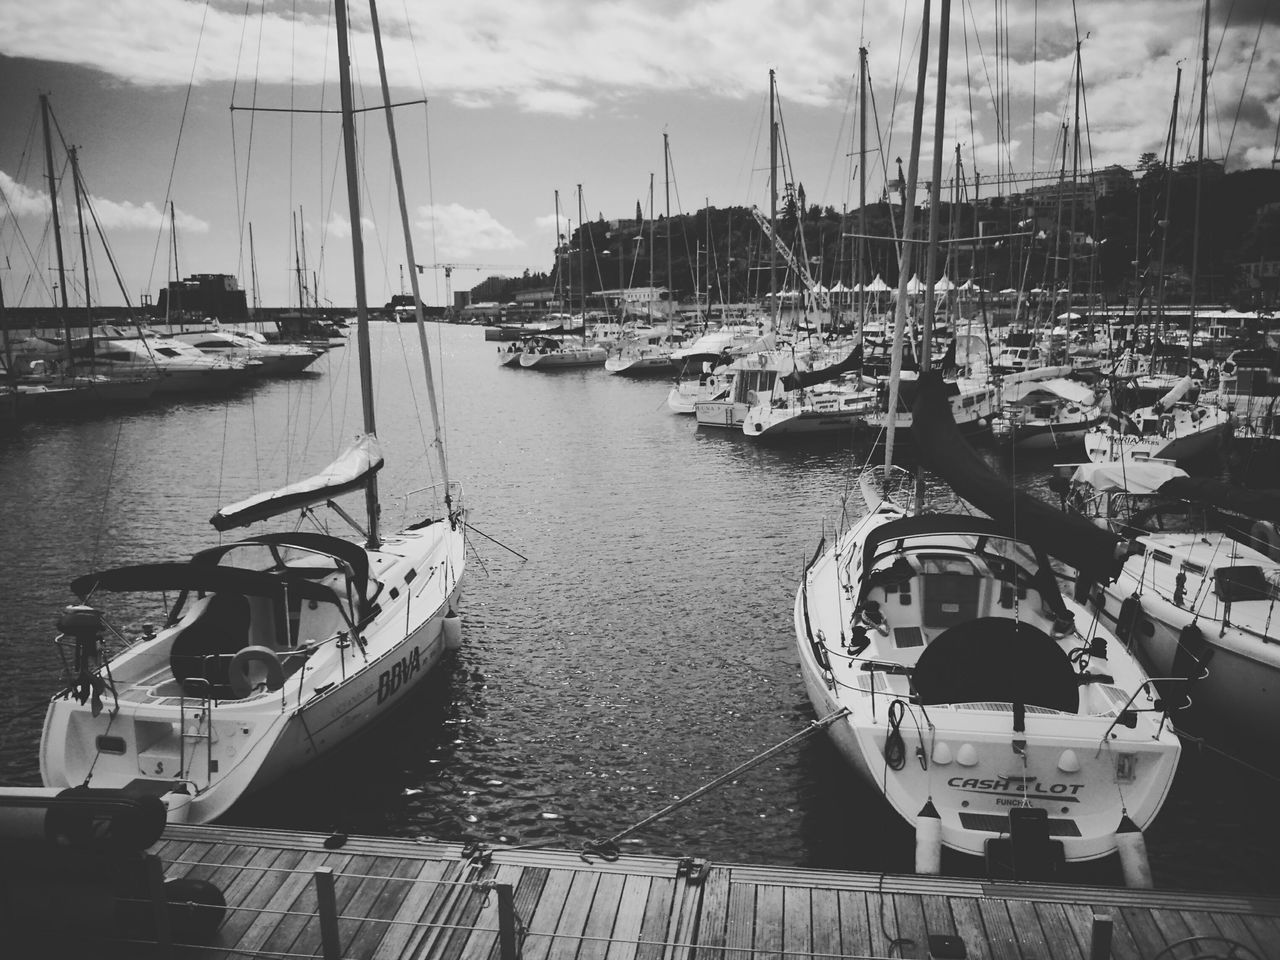 Madeira Docks Yatch Blackandwhite Waterscape Sea Funchal Relaxing Sony Photography